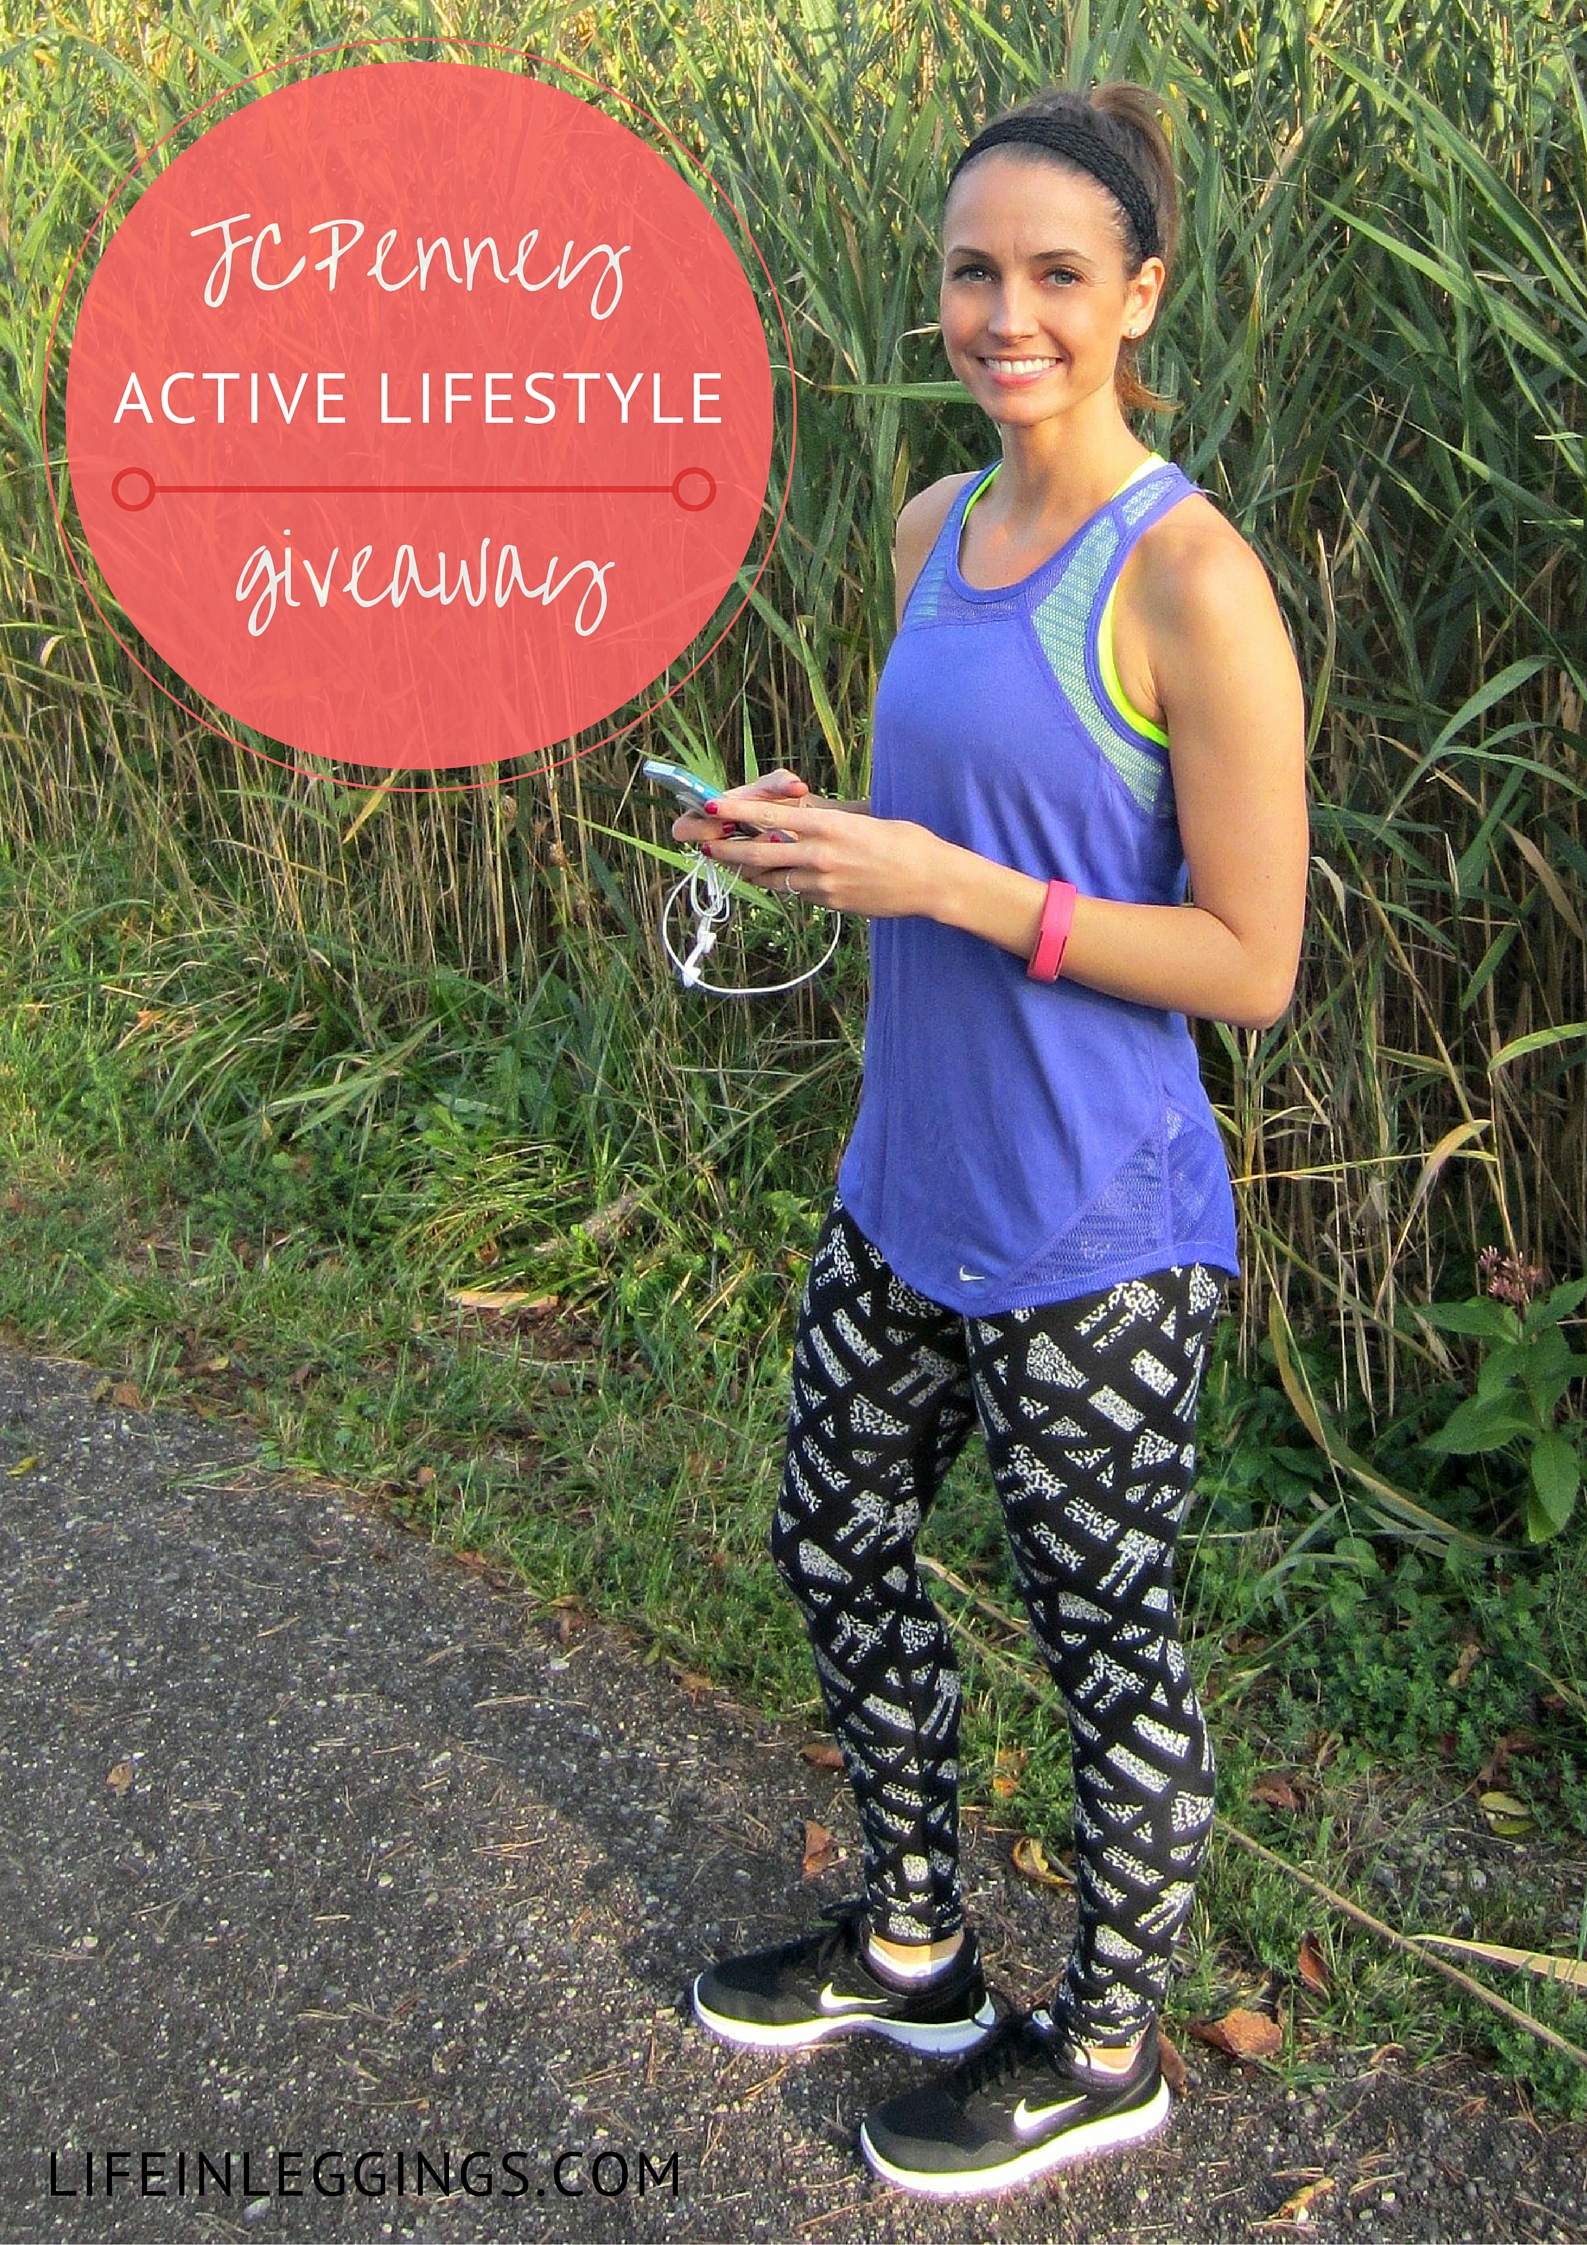 JCPenney Active Lifestyle Giveaway